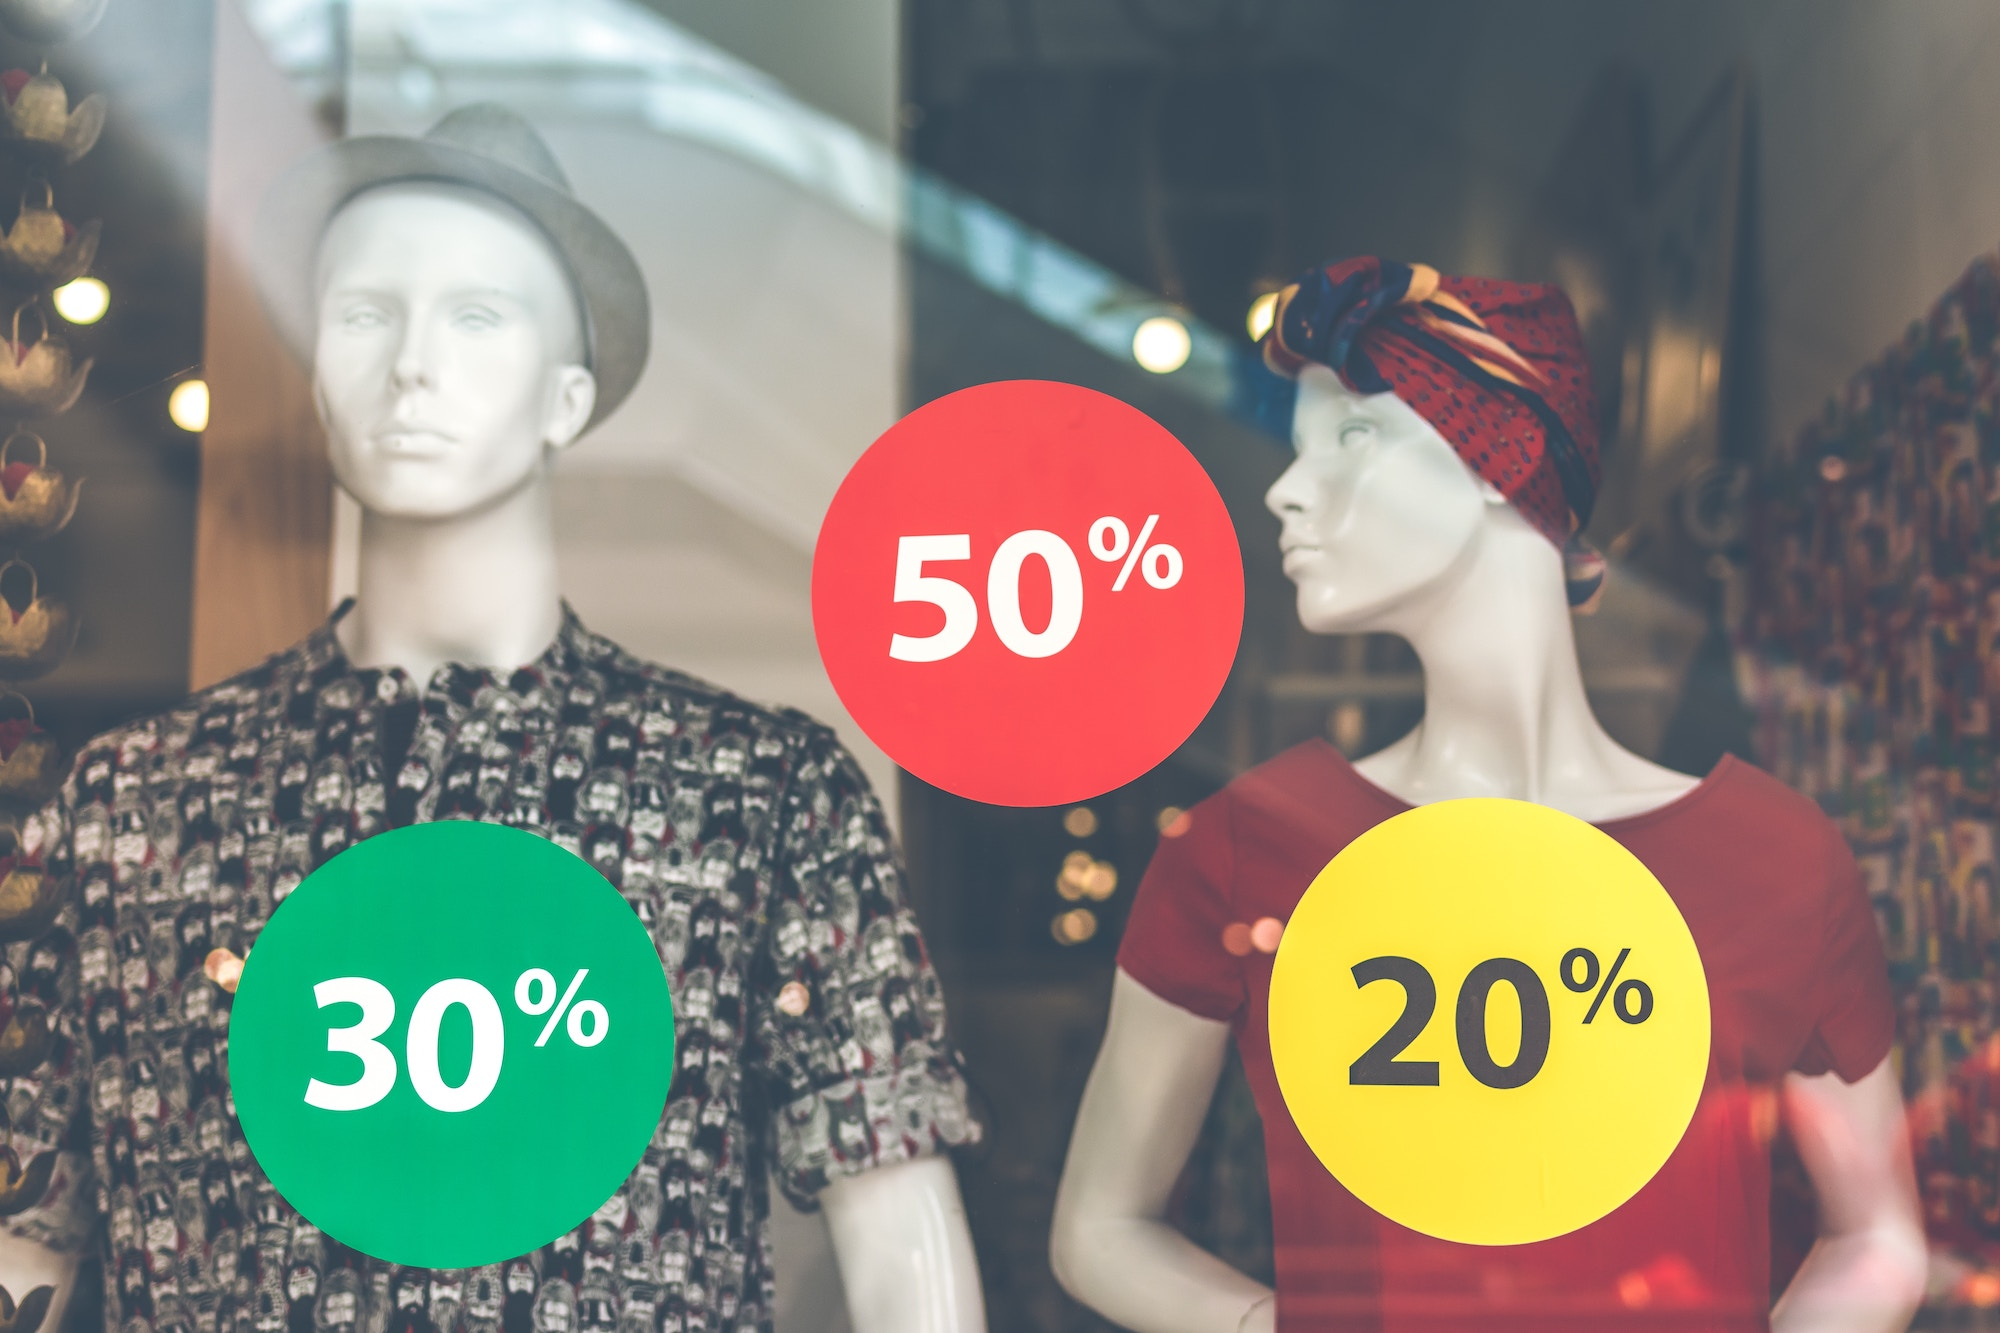 Storefront of two mannequins with stickers showing various percentages indicating a sale